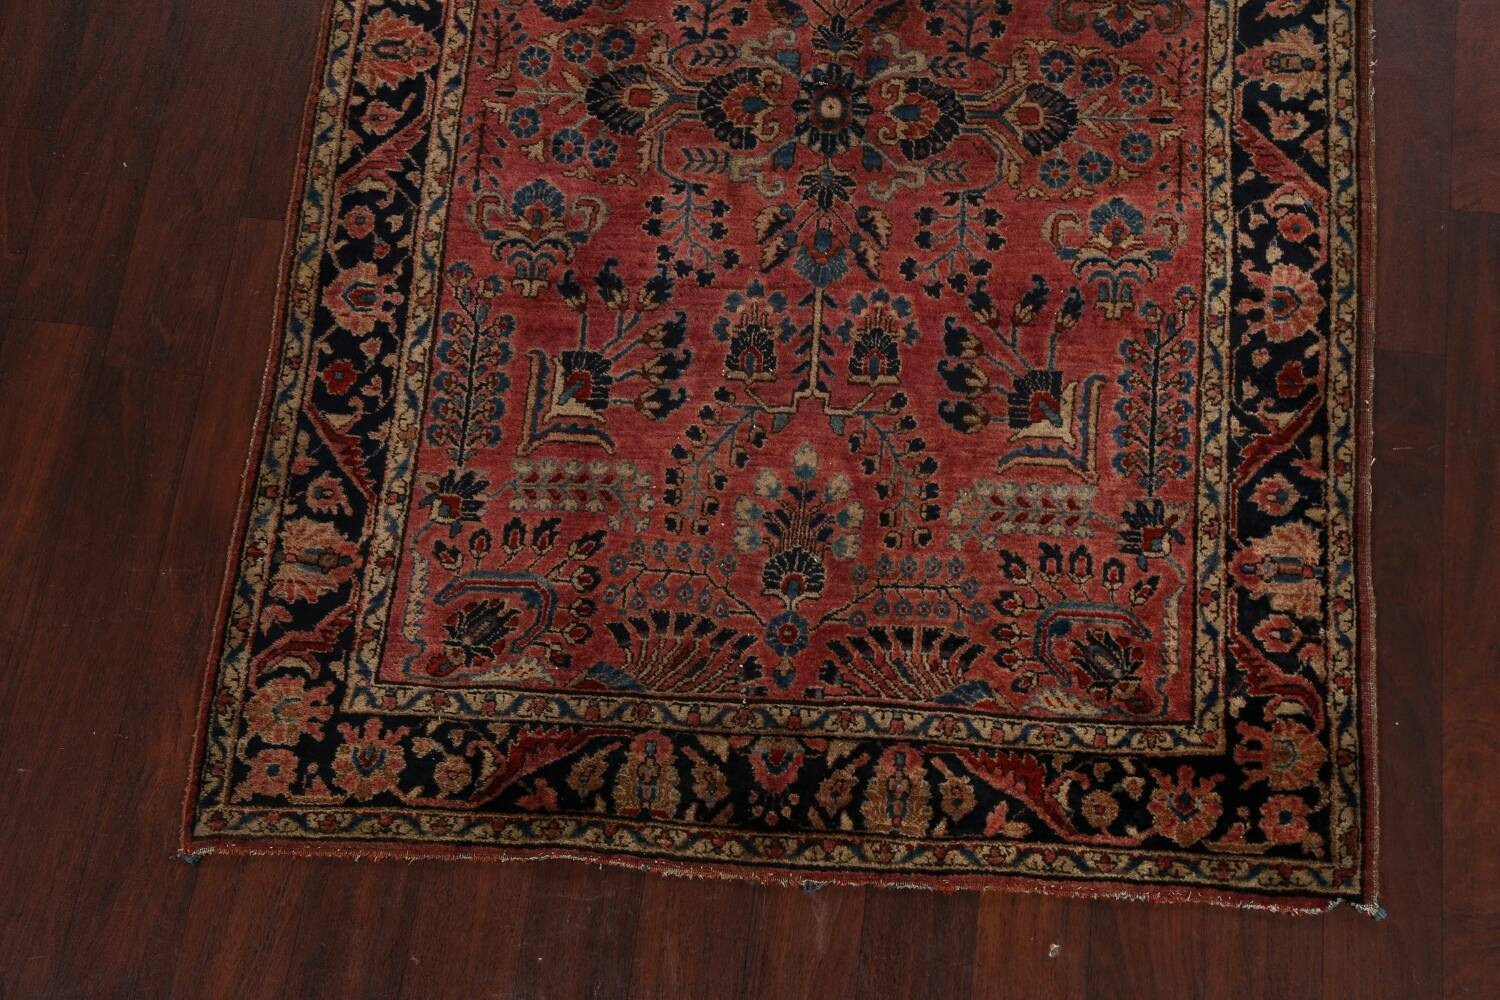 Antique Vegetable Dye Floral Sarouk Persian Area Rug 4x7 image 5